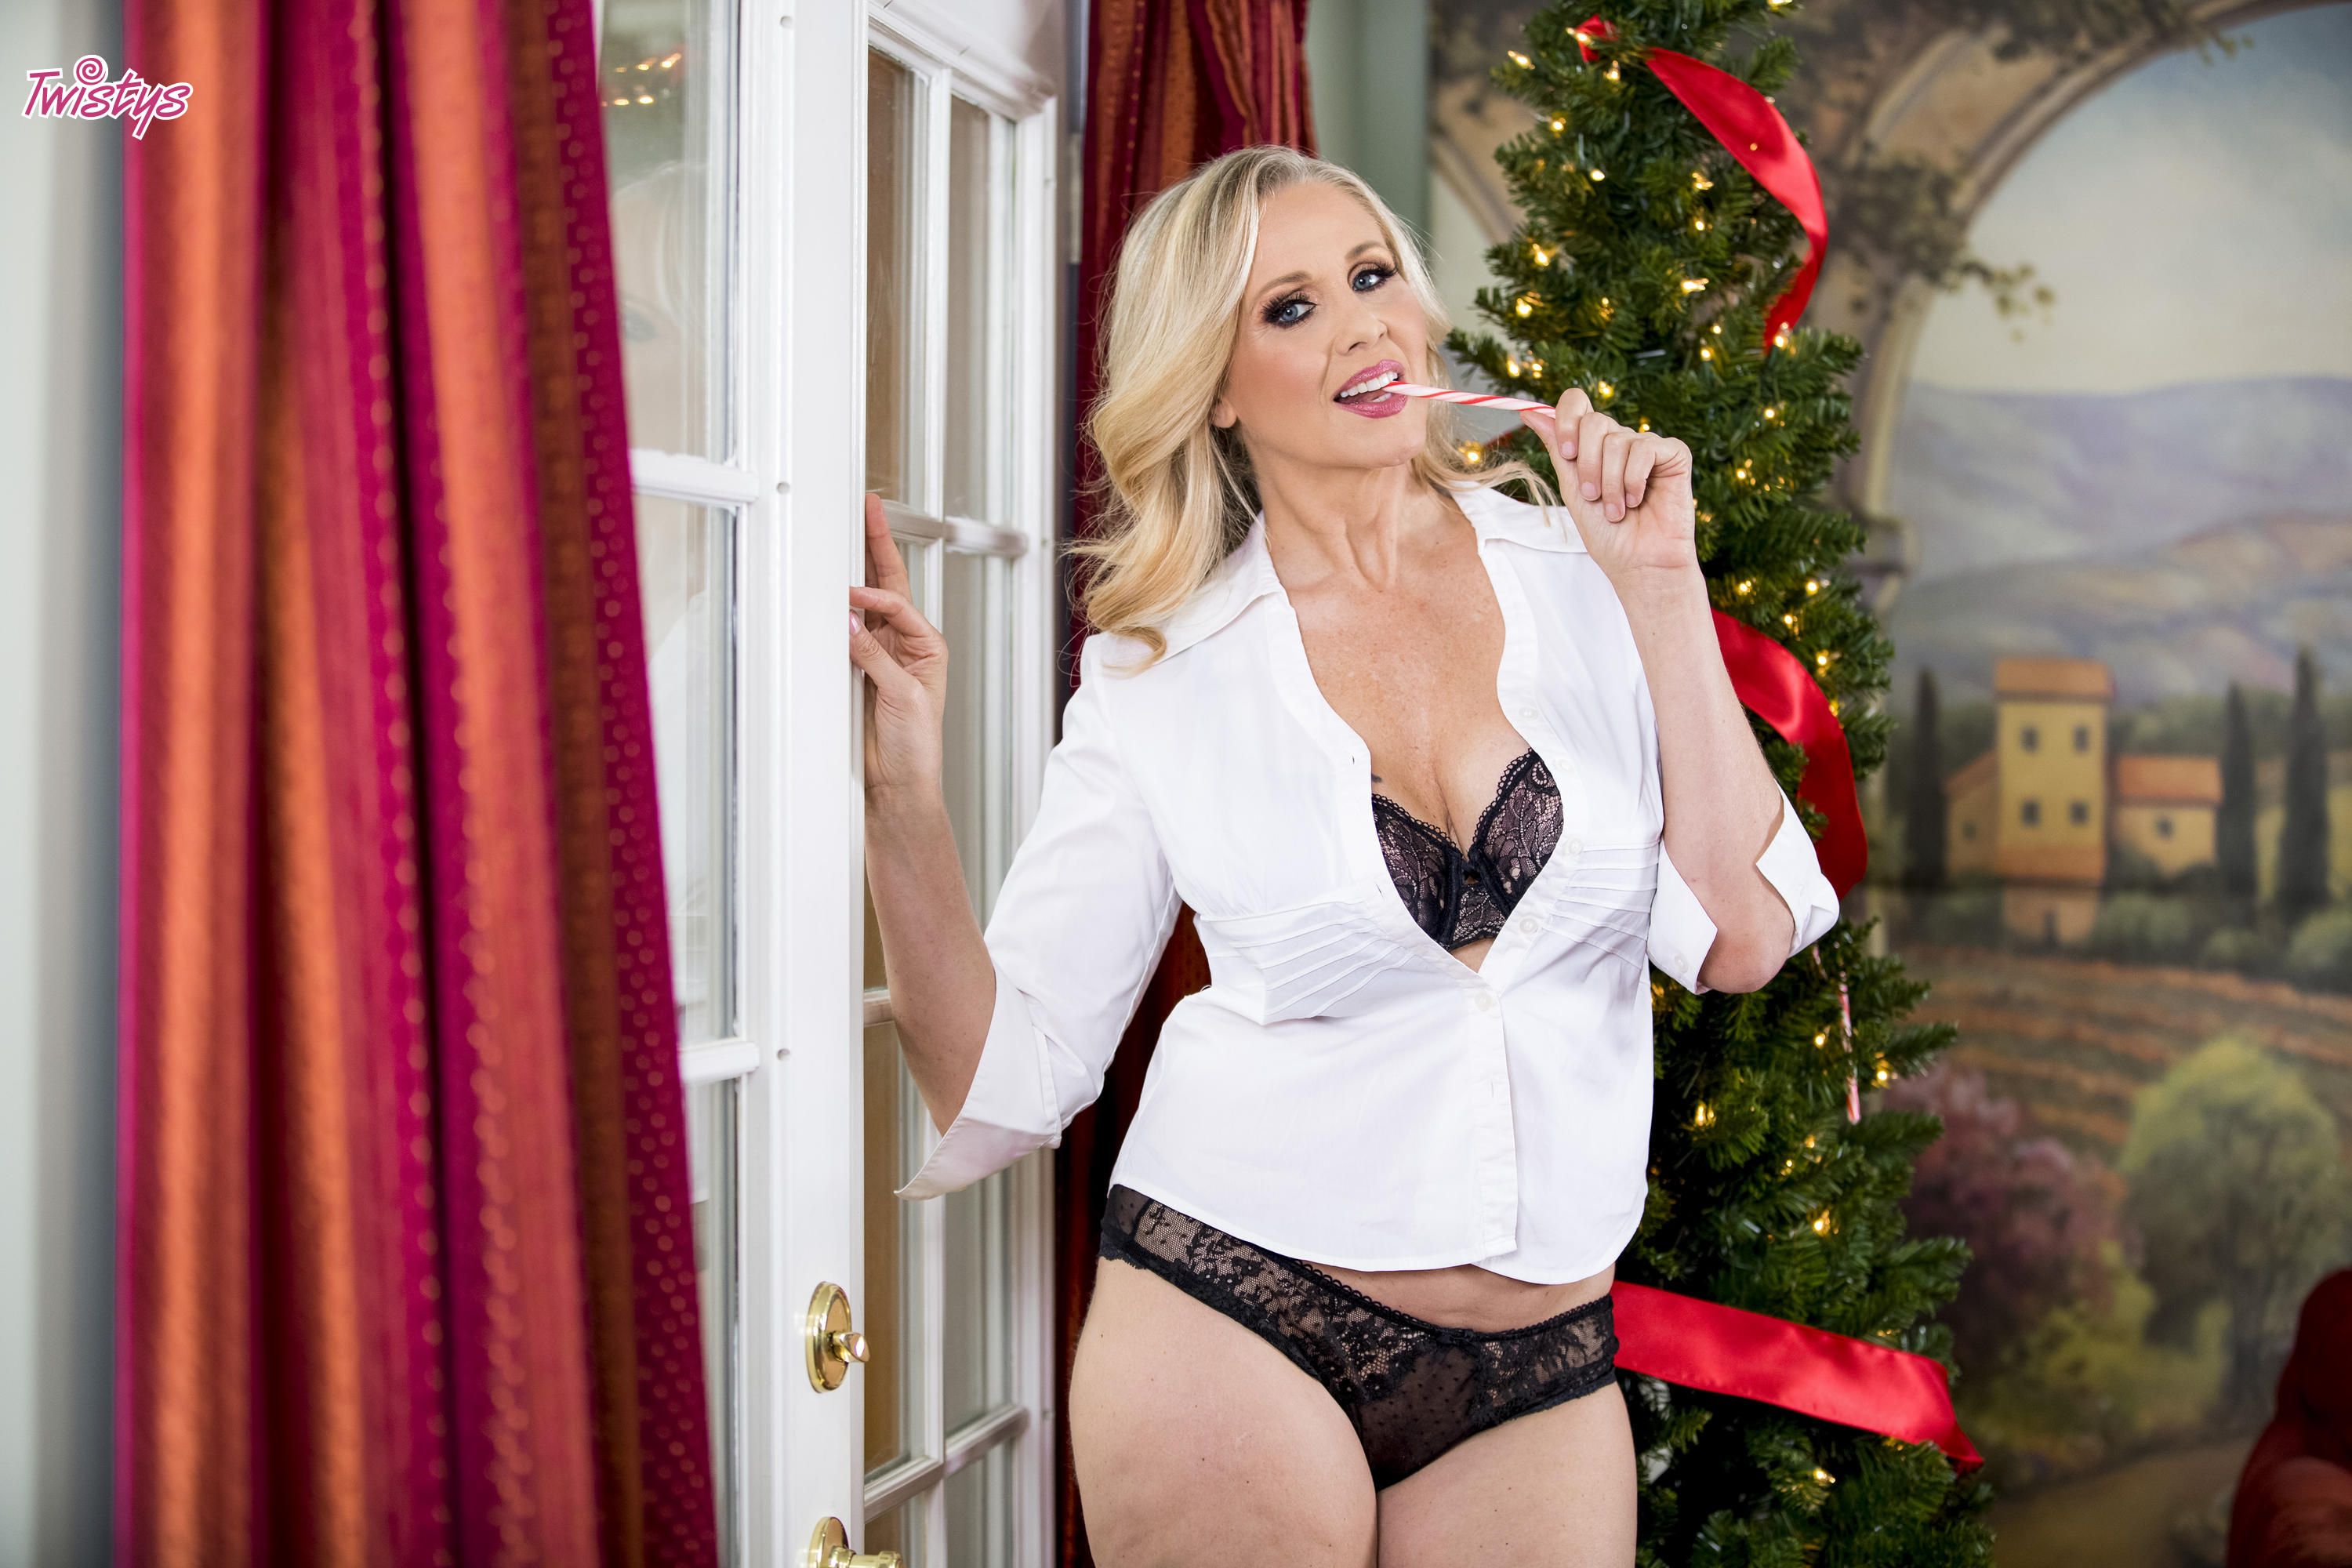 Twistys 'Unwrap Me' starring Julia Ann (Photo 32)